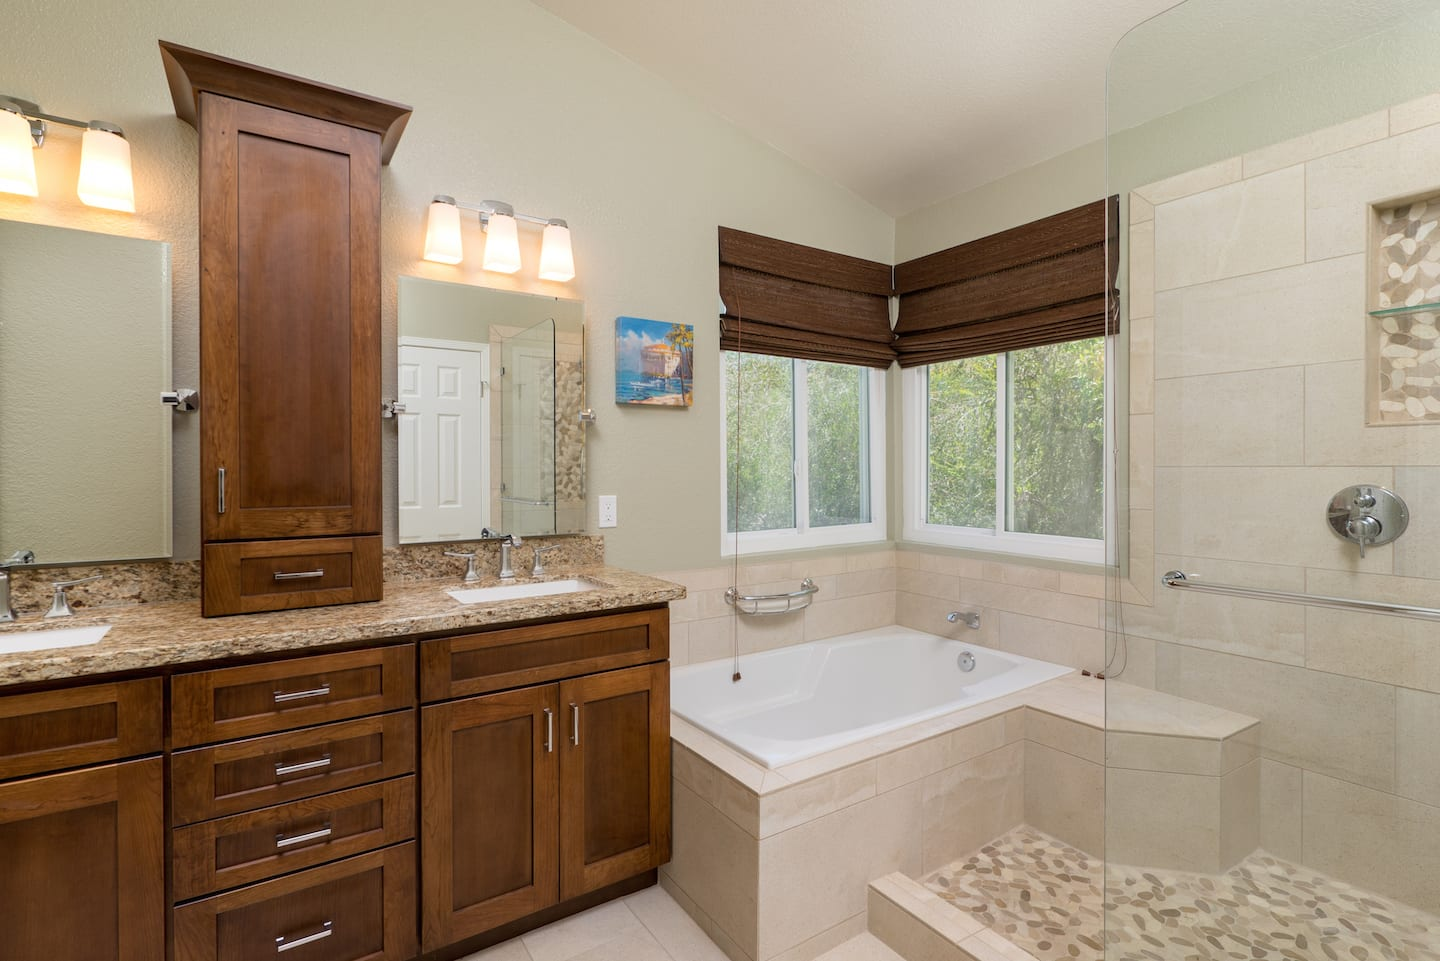 Pictures Of Remodeled Bathrooms bathroom remodeling - planning and hiring | angie's list